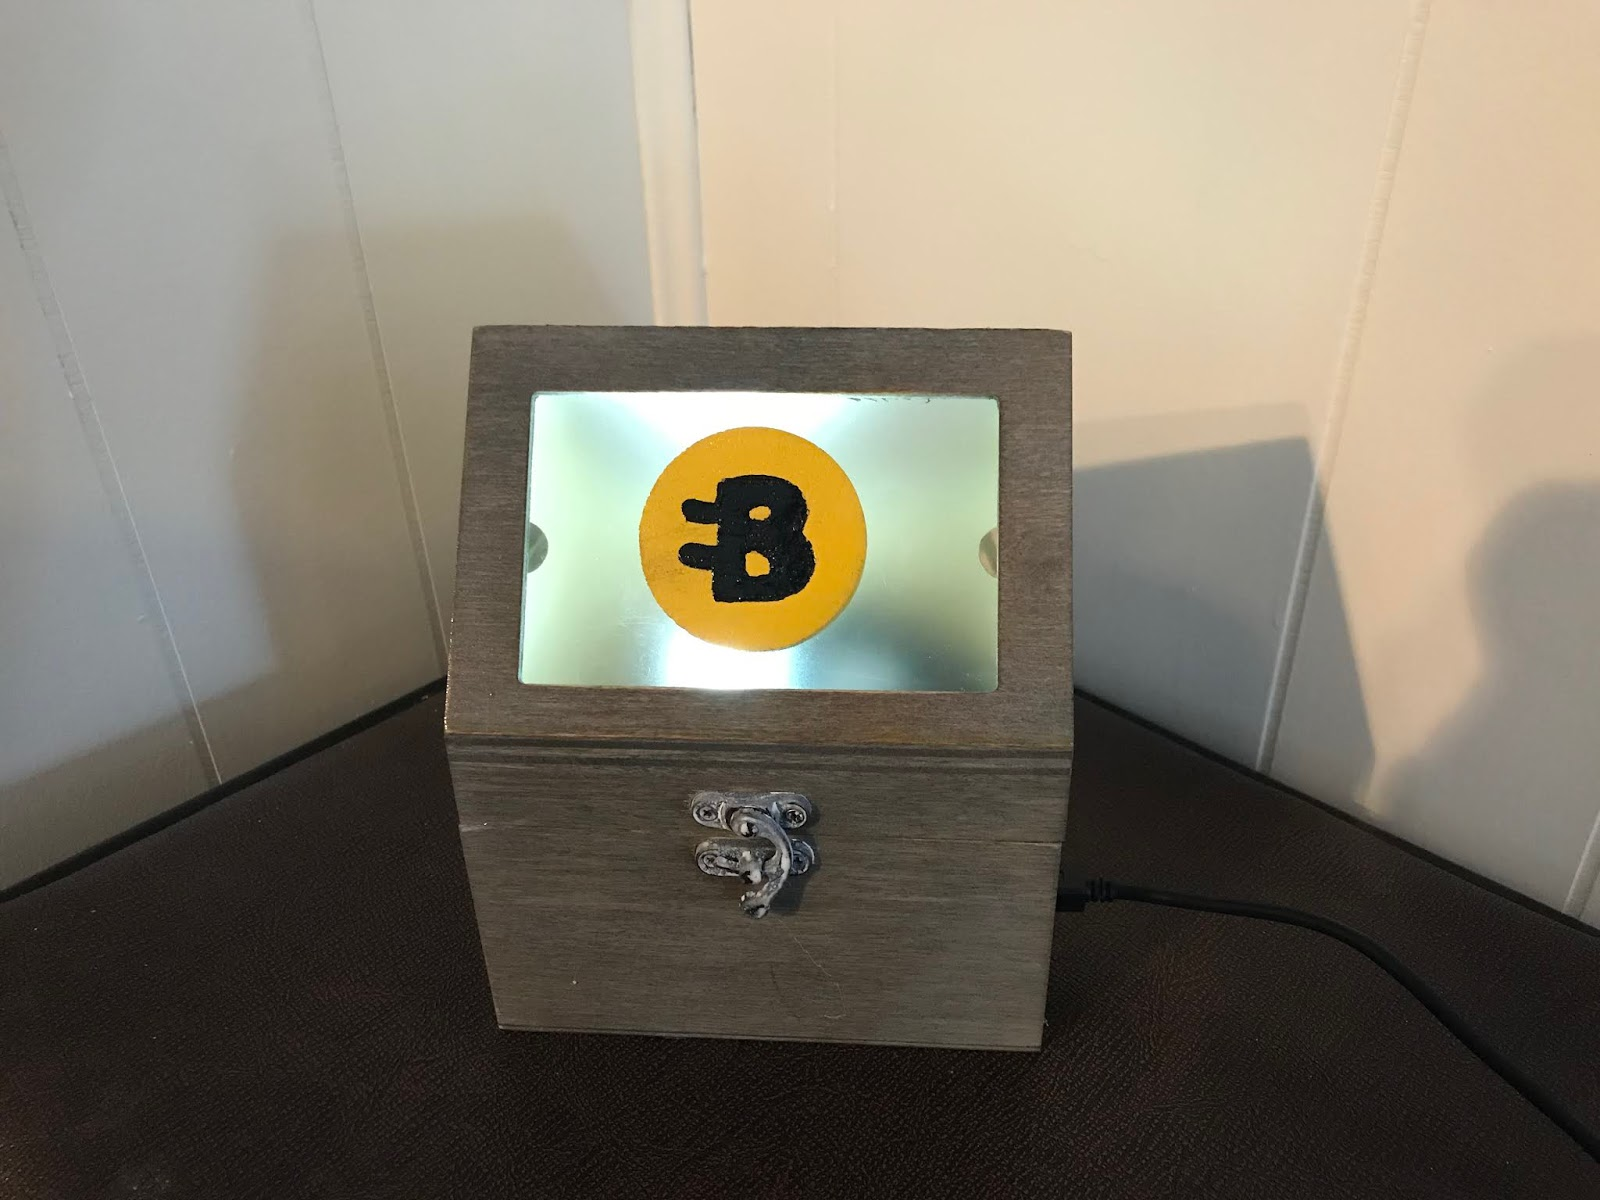 Project - Building a Raspberry Pi Crypto-currency Miner